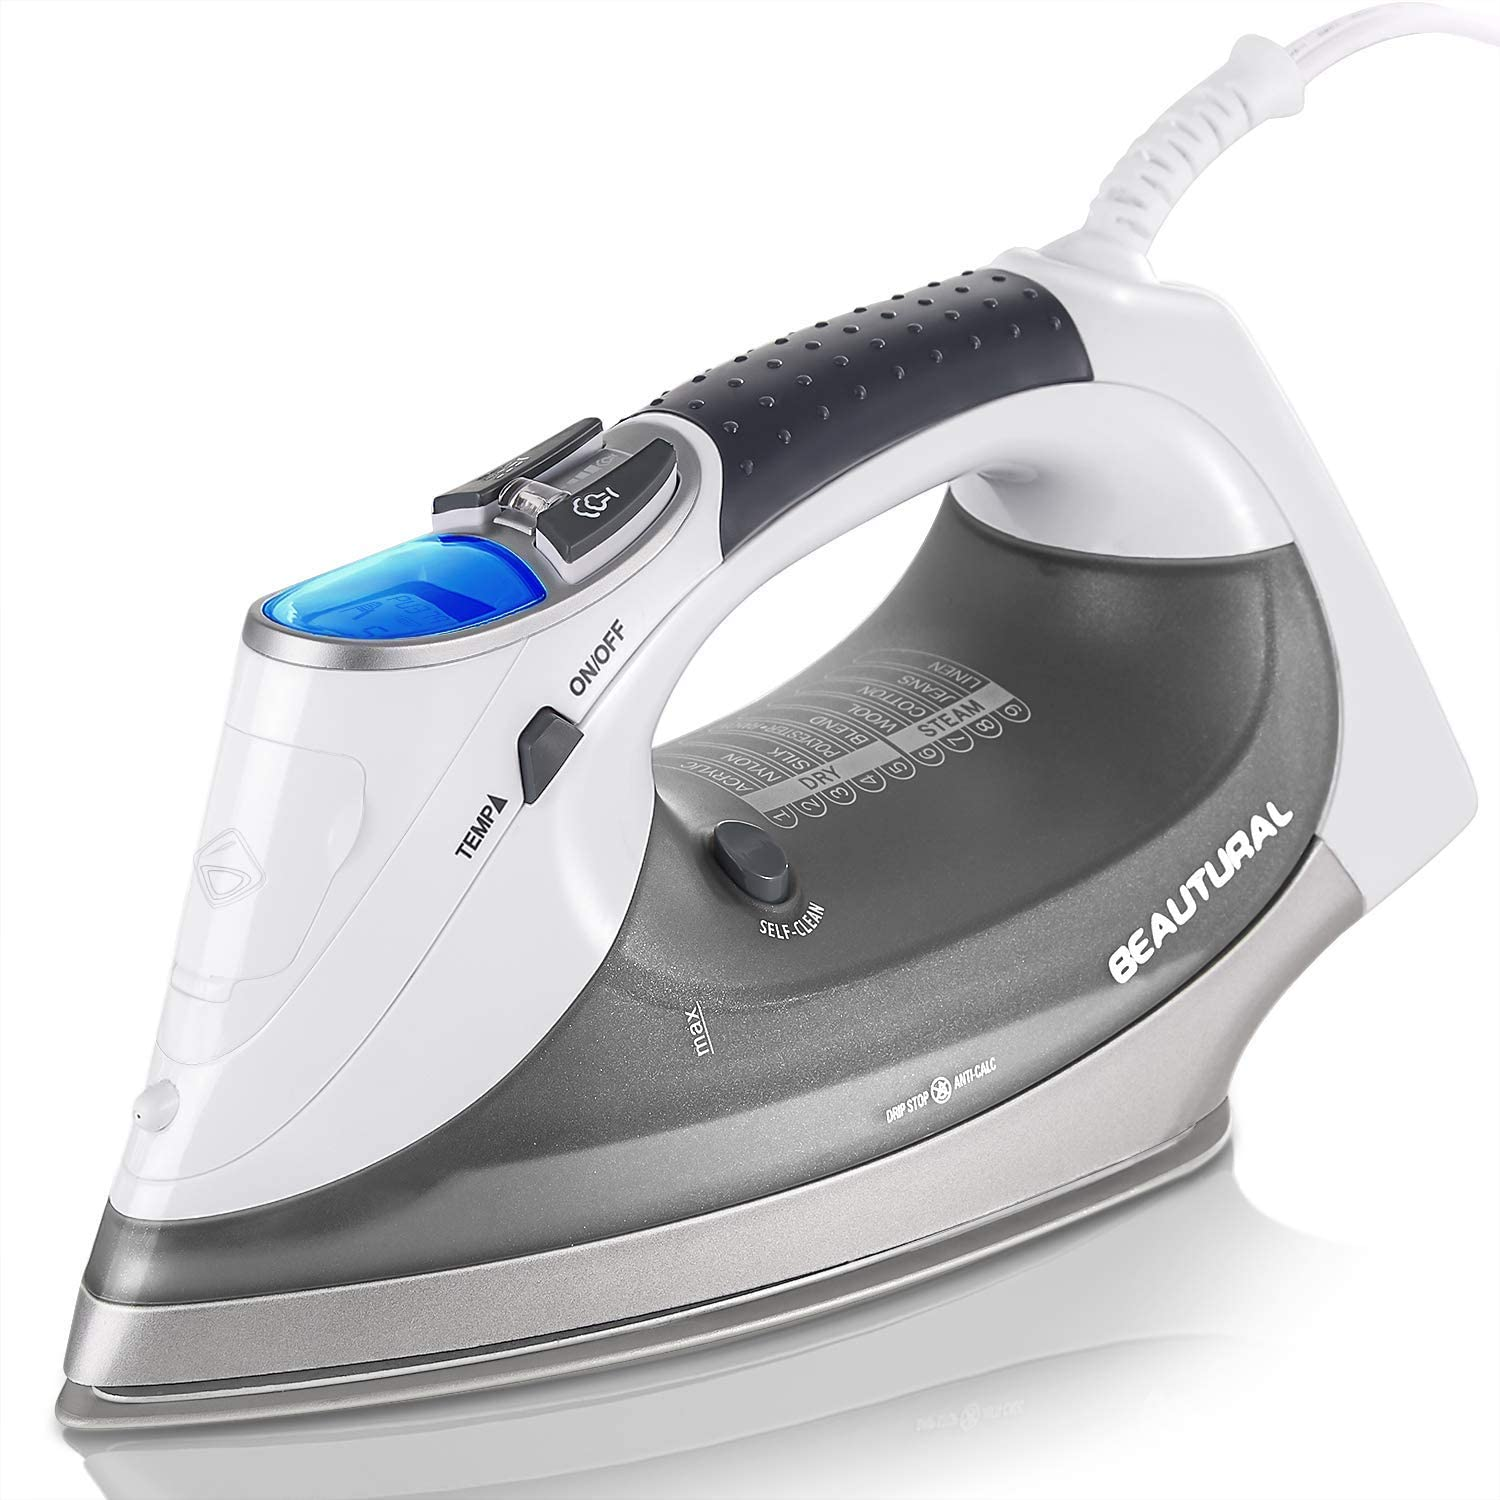 BEAUTURAL Steam Iron